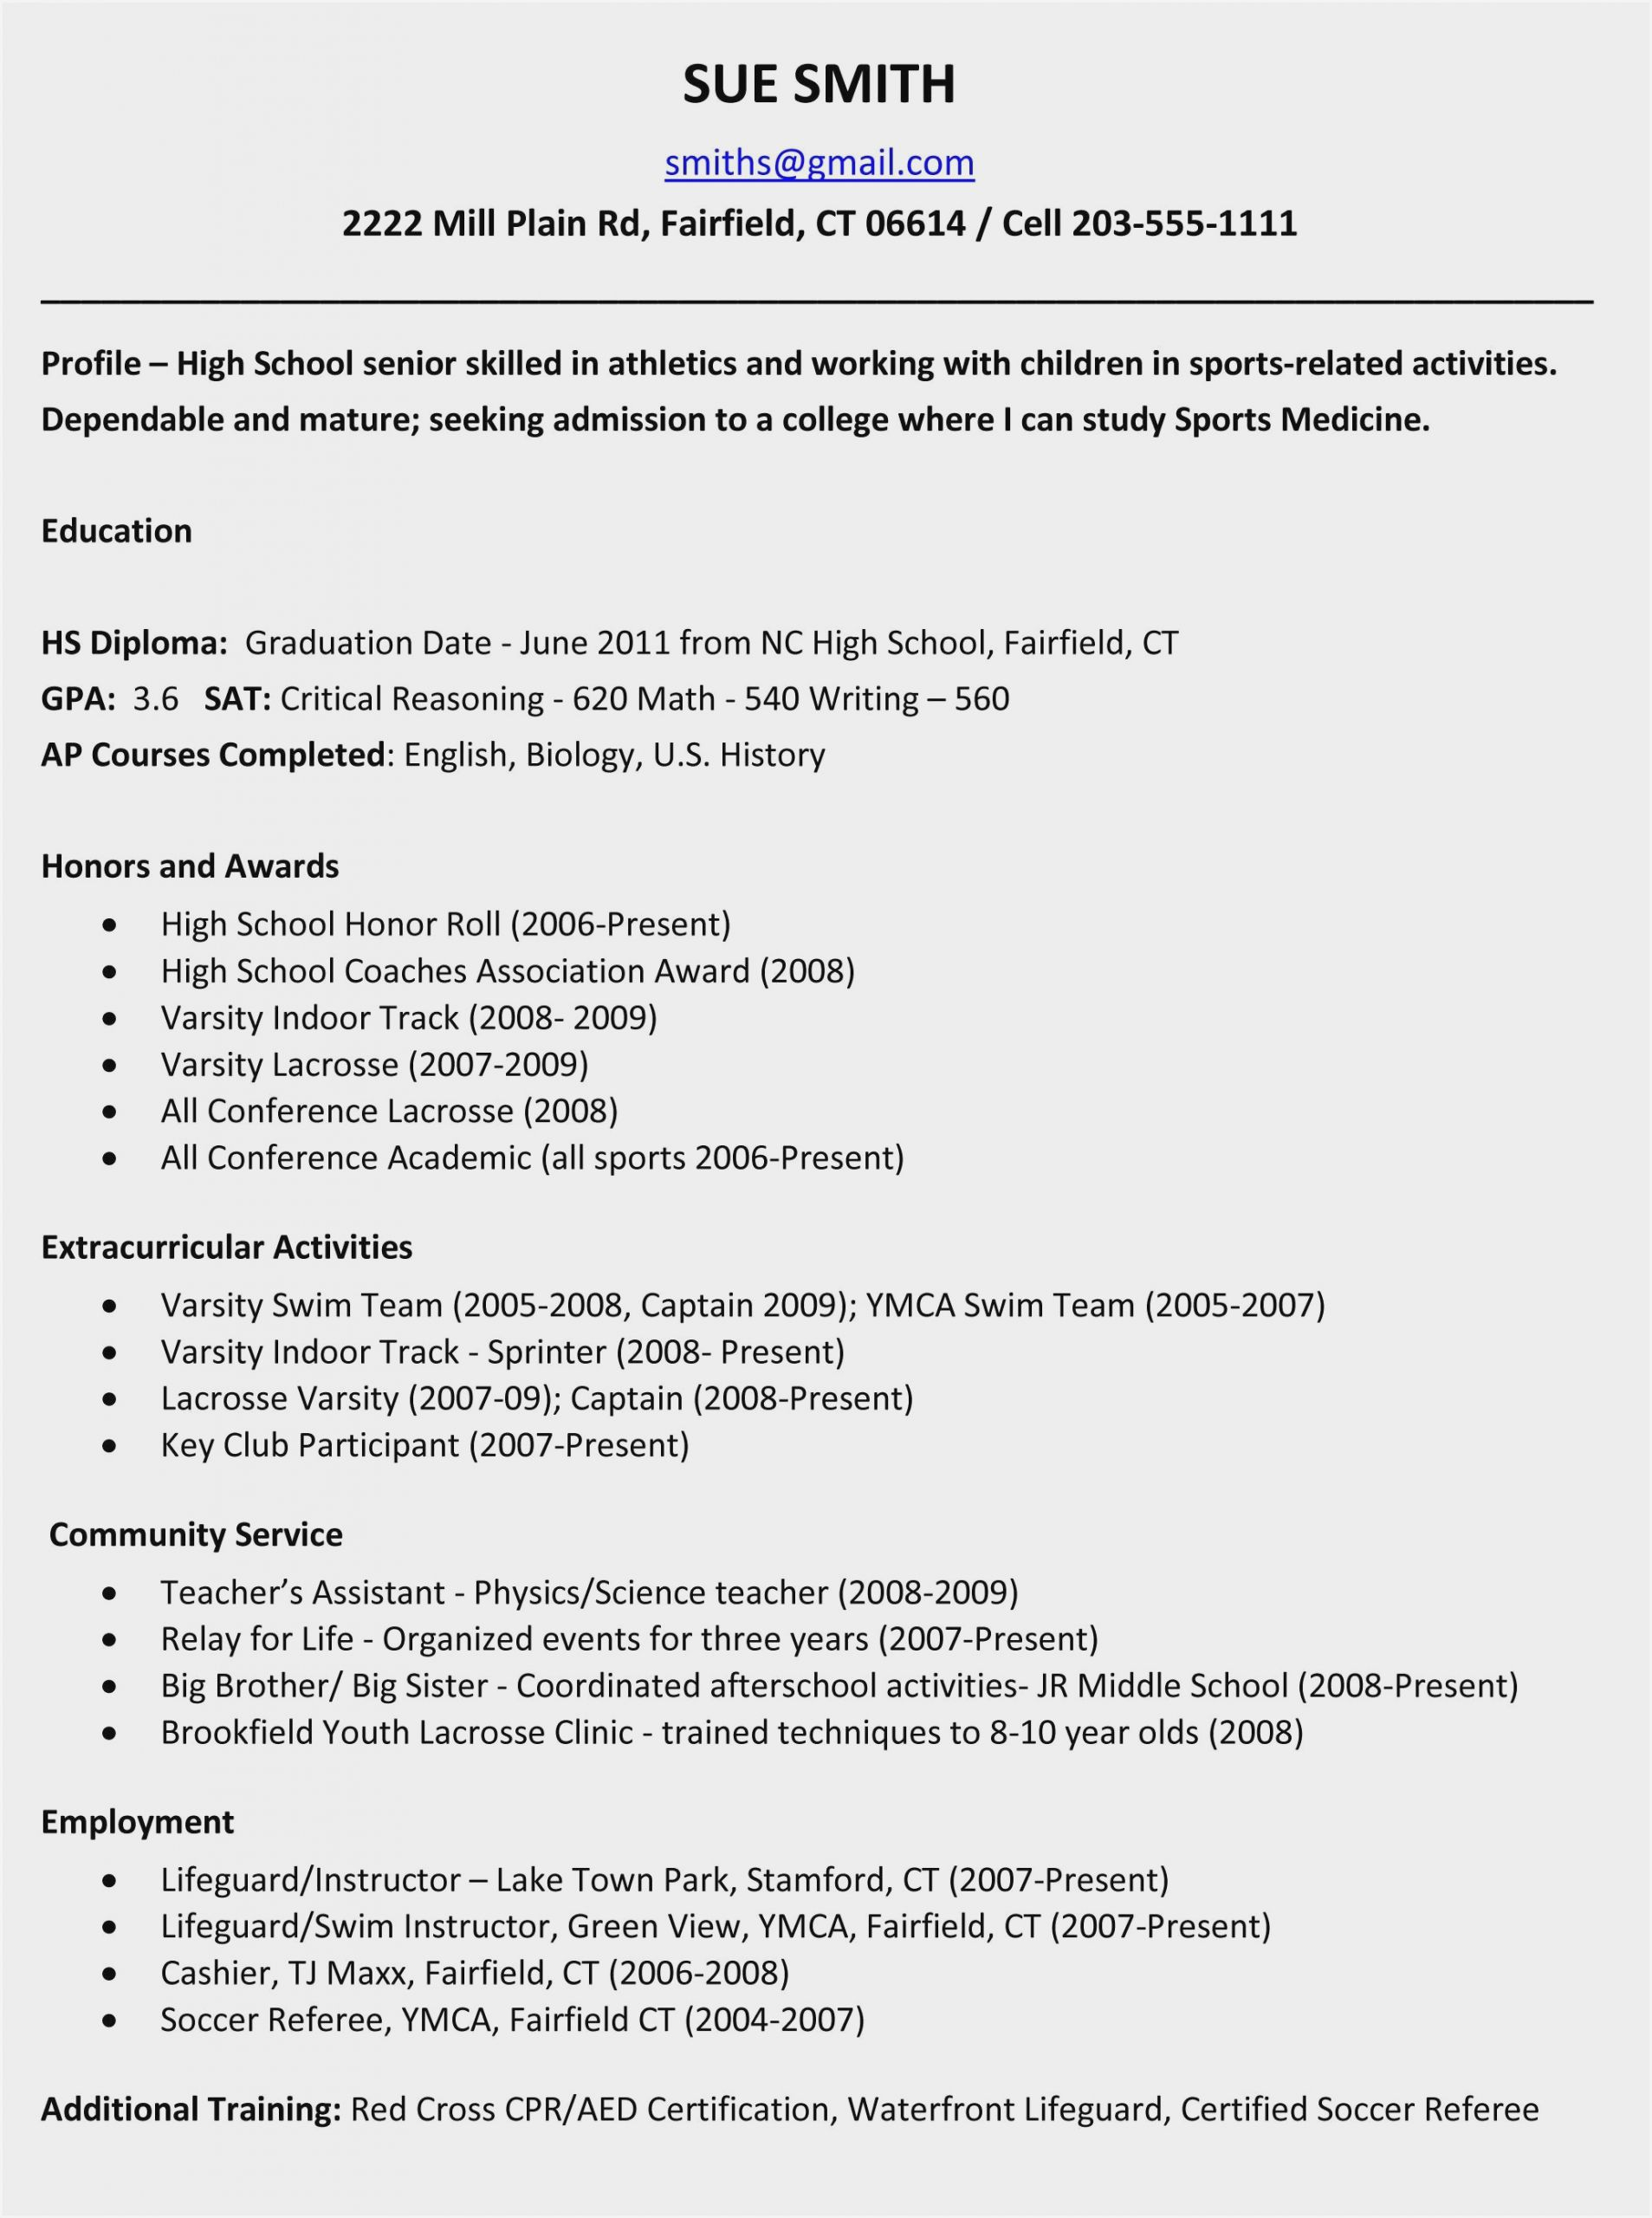 blank resume template for college students sample good templates high school admissions Resume Good Resume Templates For College Students